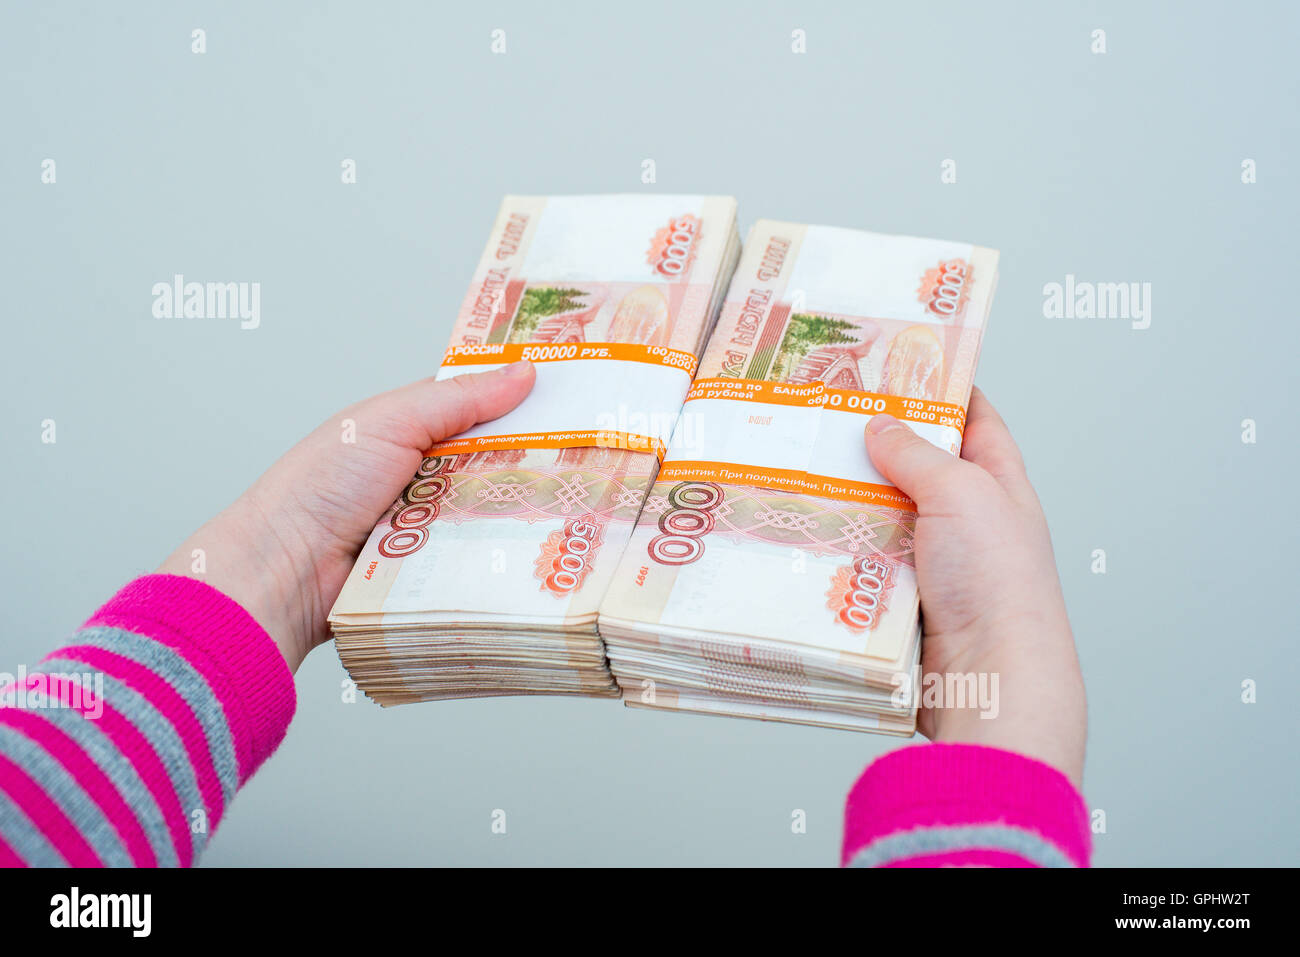 closeup human's hands holding russian rubles - Stock Image